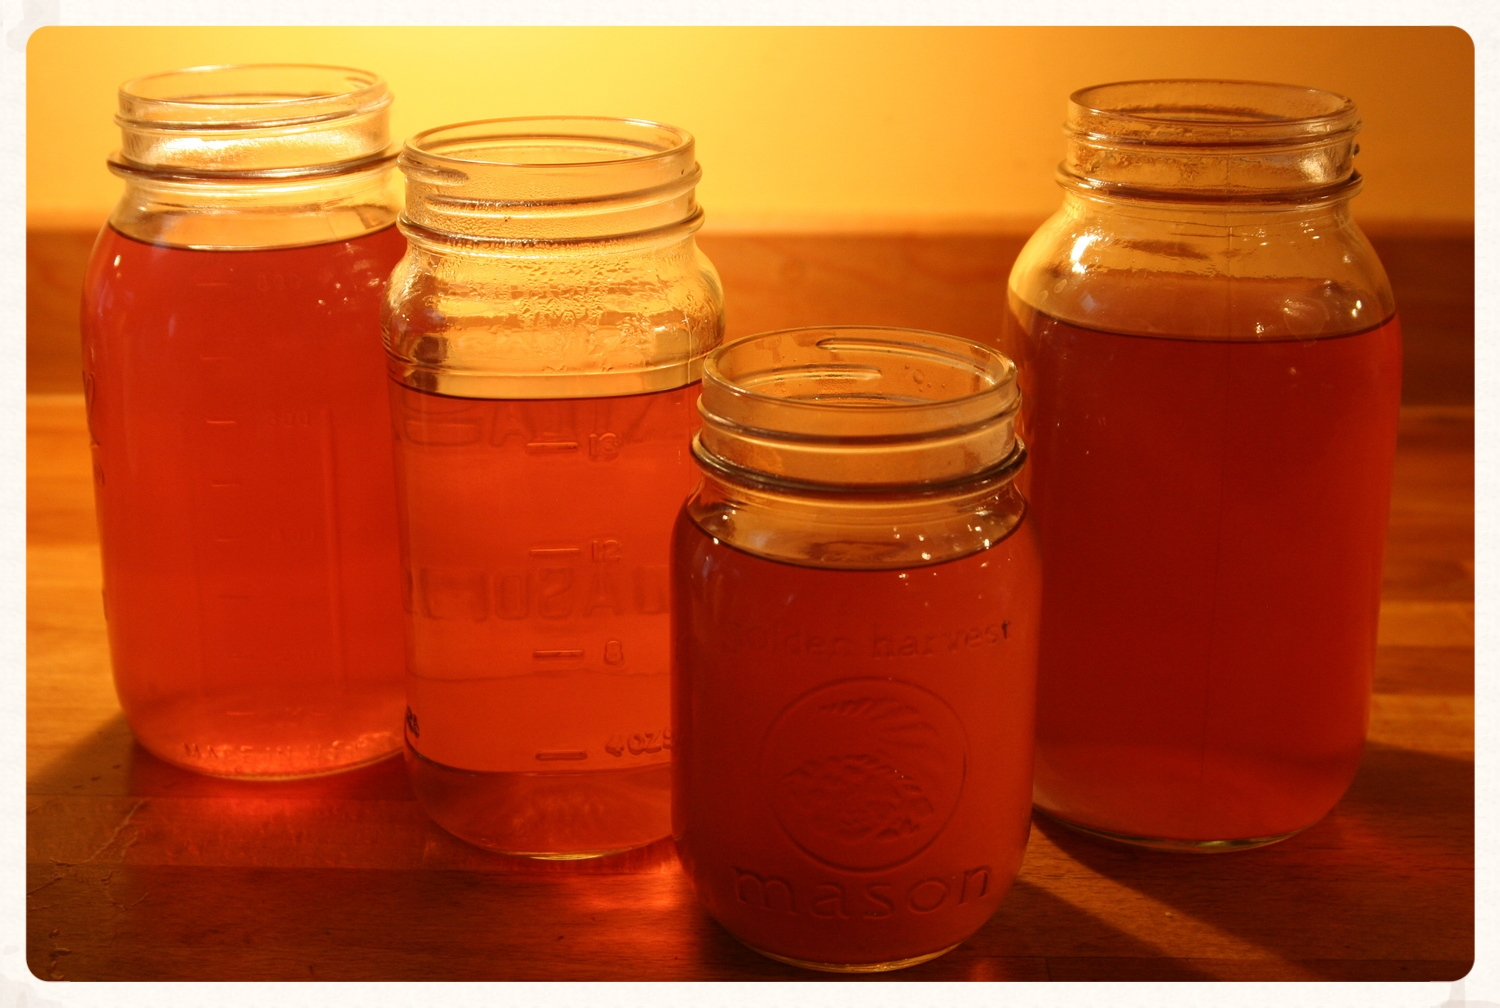 Any left-overs can be poured into jars. Allow to cool and it can then be stored in the fridge for up to 5 days.